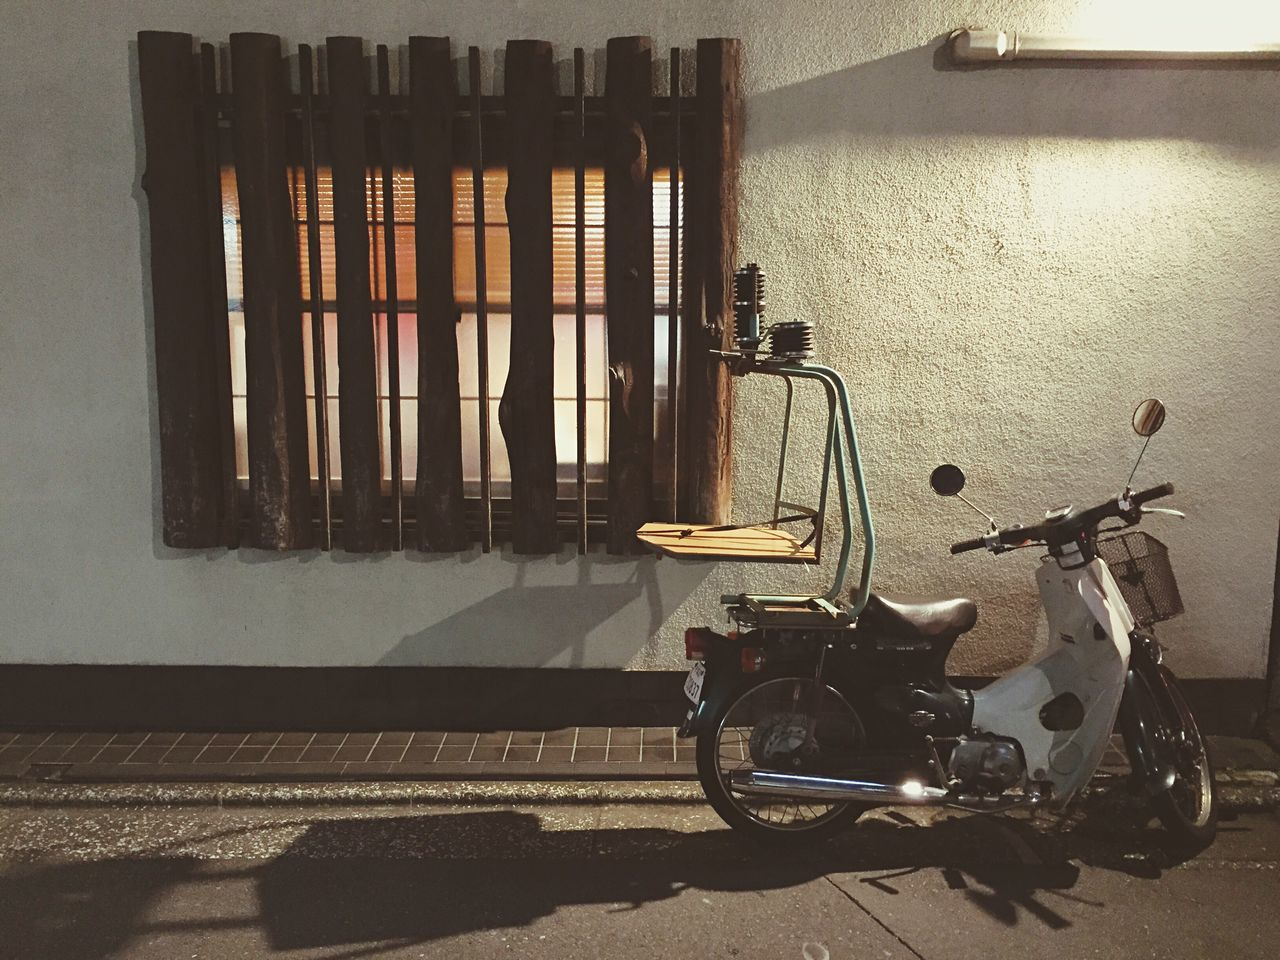 Embrace Urban Life Neighbourhood Charm Tokyo Night Street Light No People Motorcycles Vintage